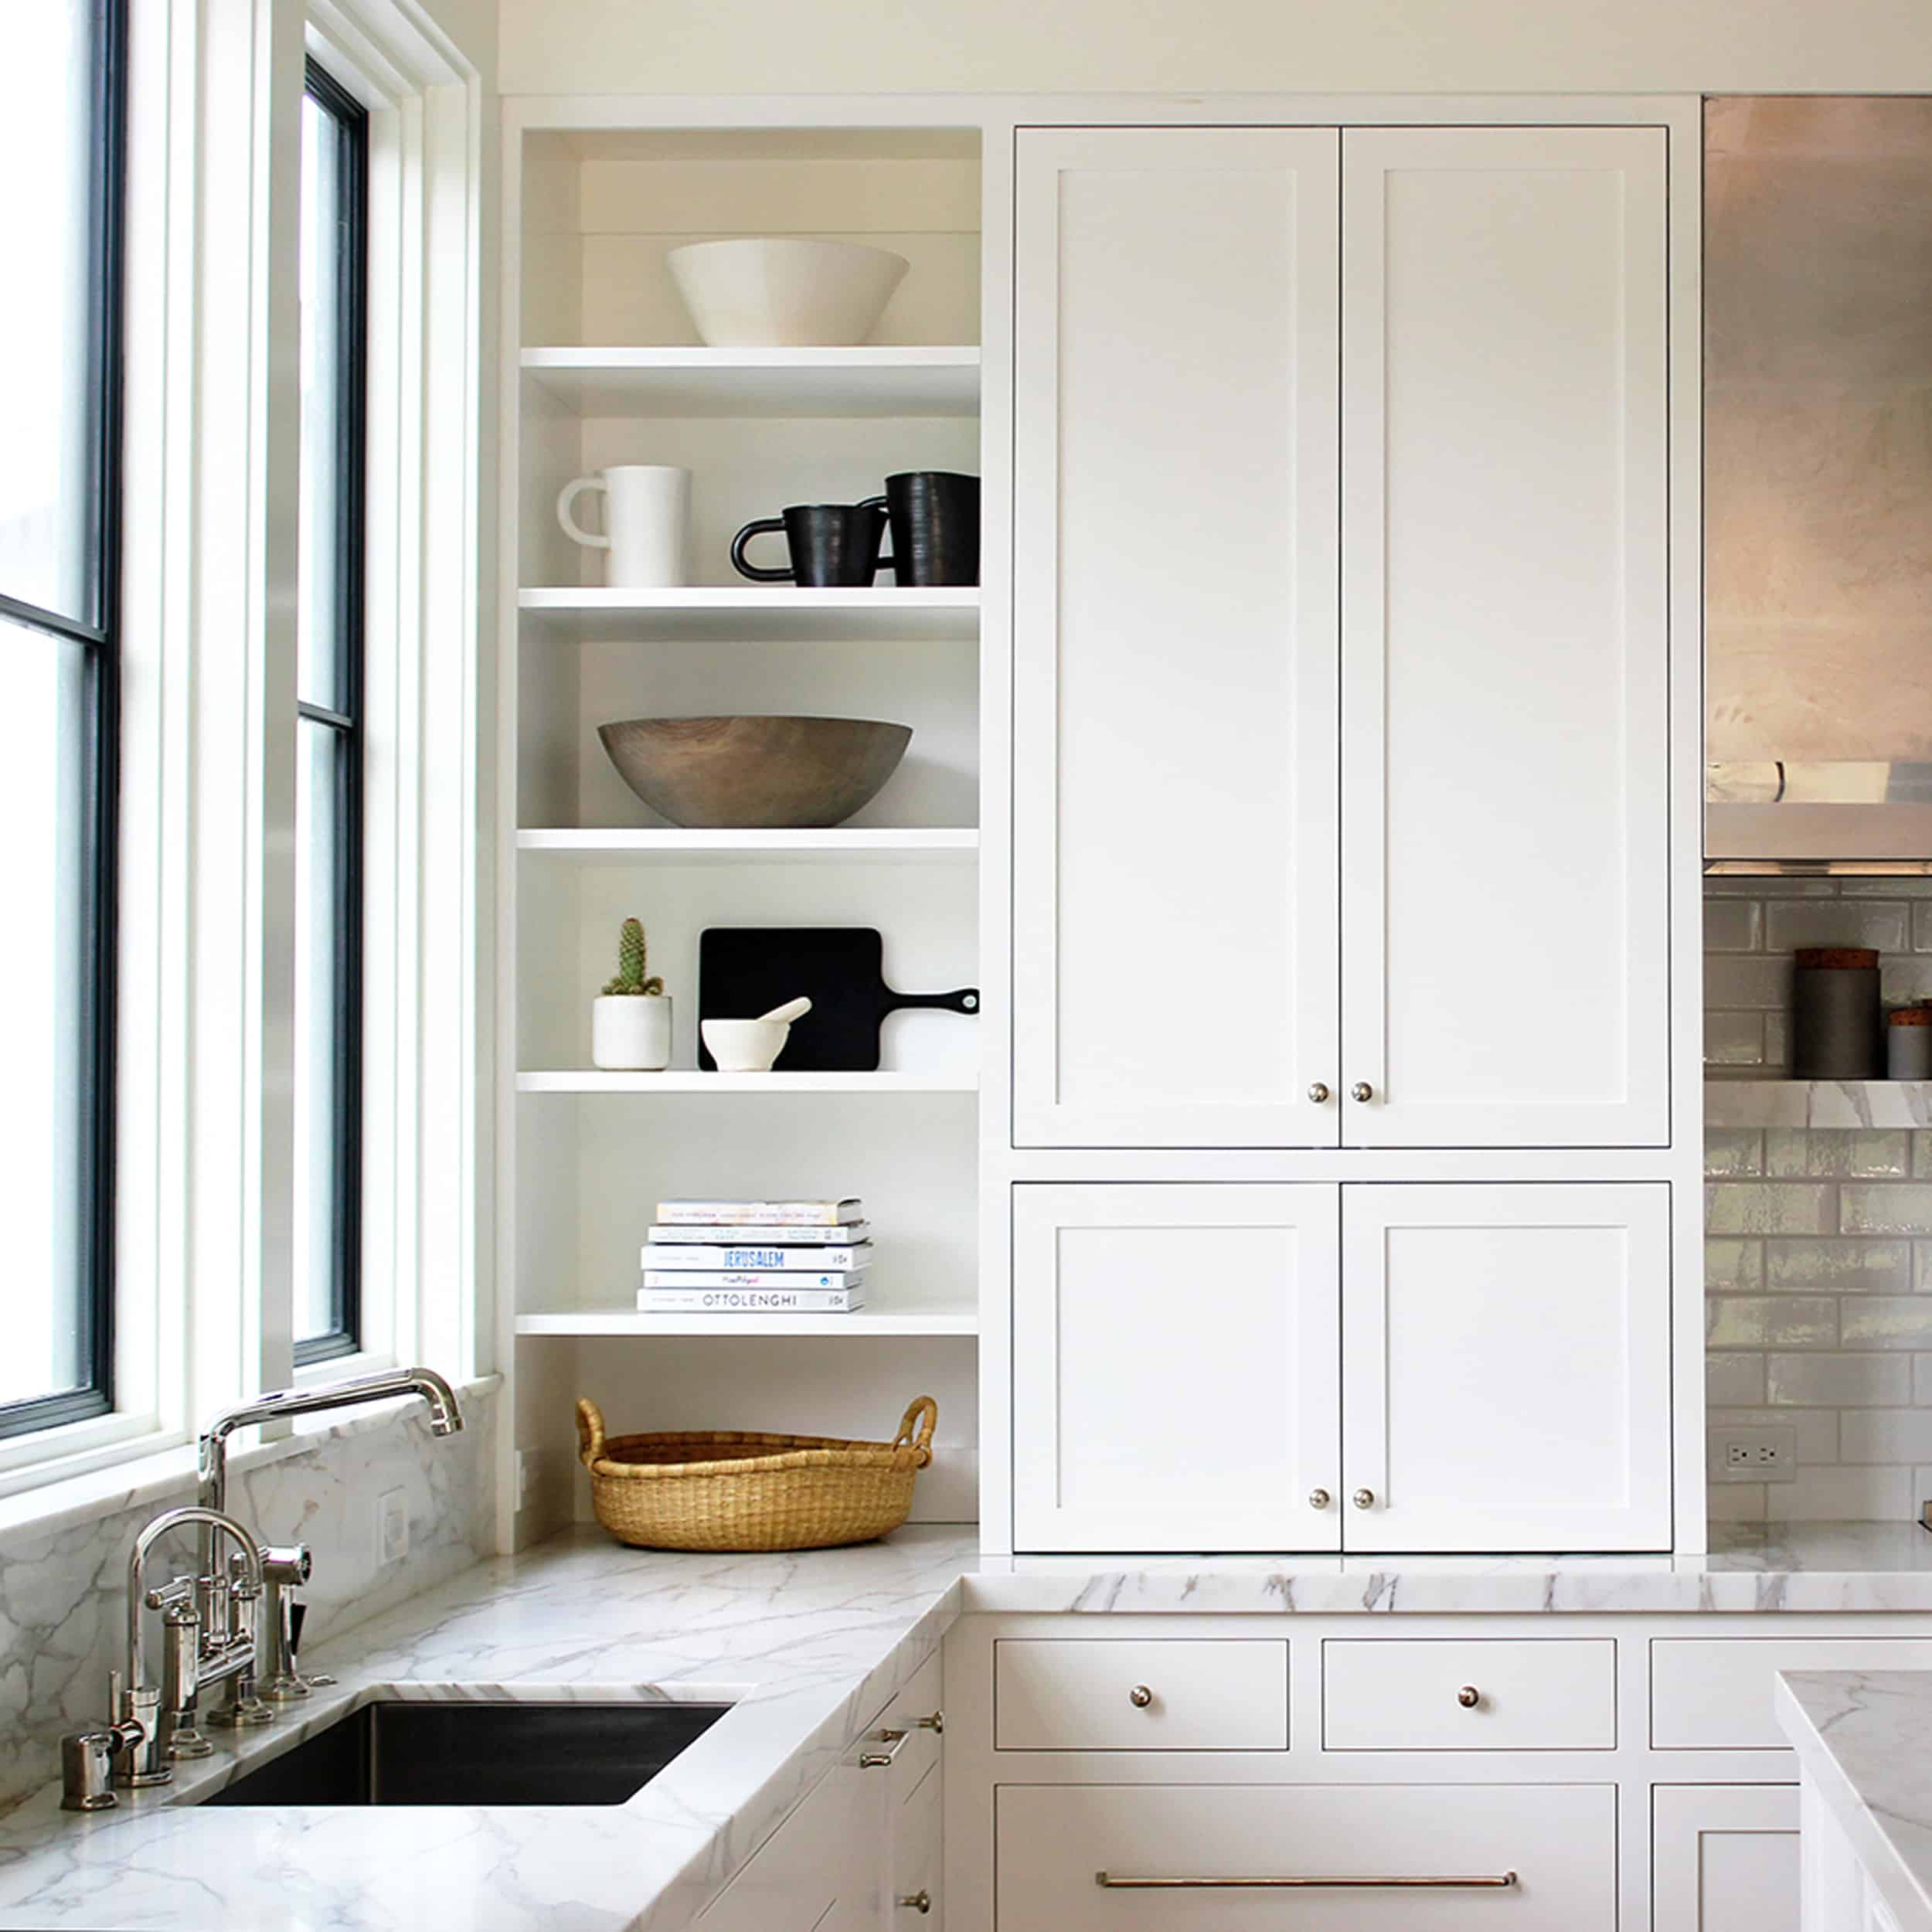 5 New Kitchen Trends We Re Seeing And